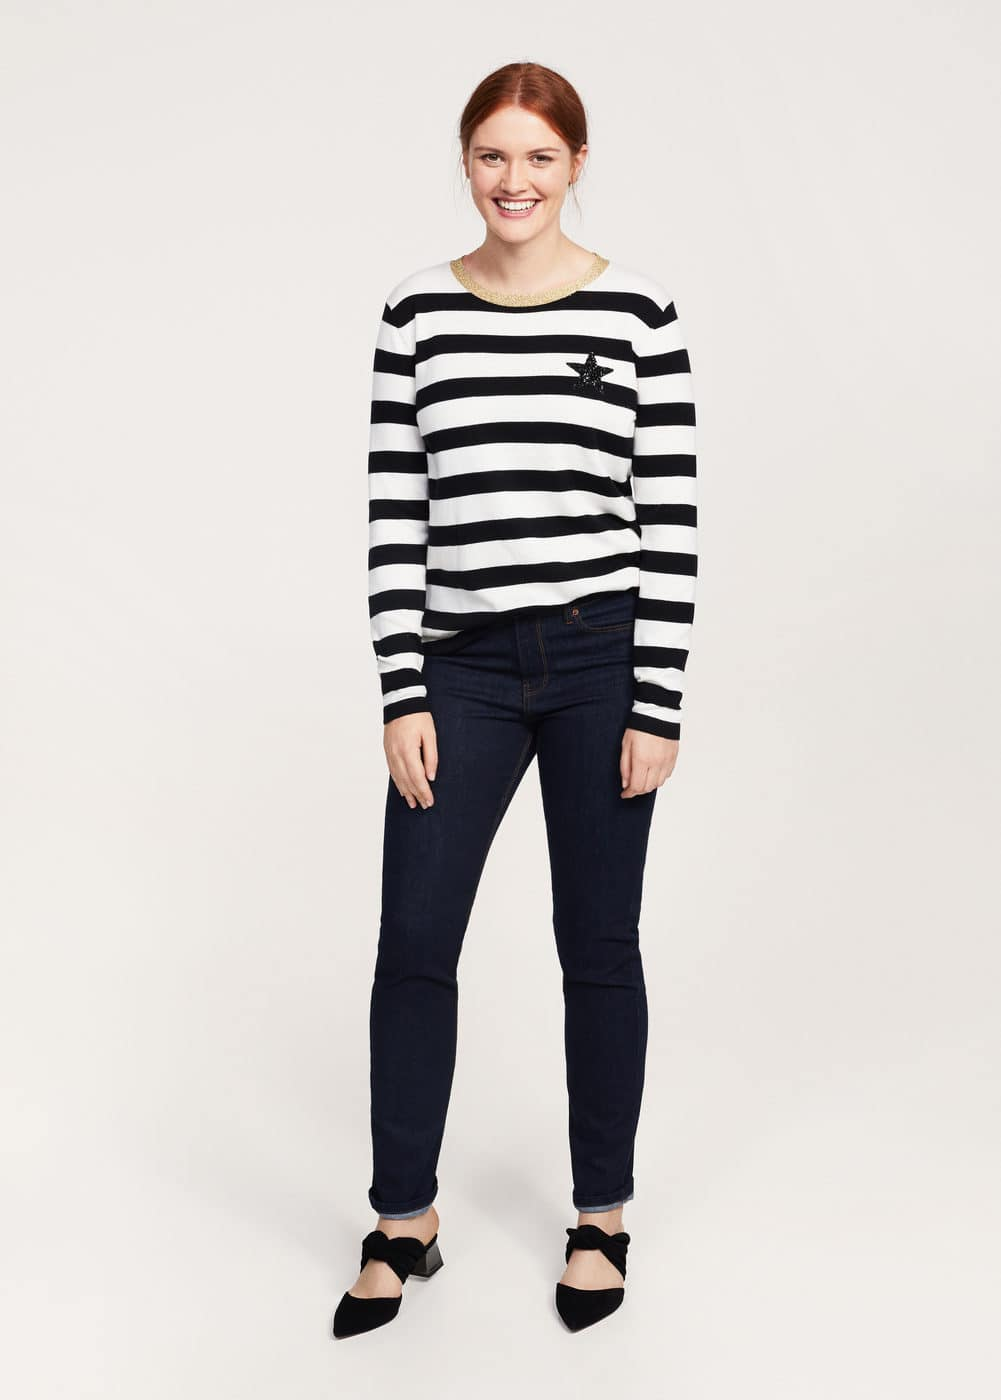 Striped appliqué sweater | VIOLETA BY MANGO